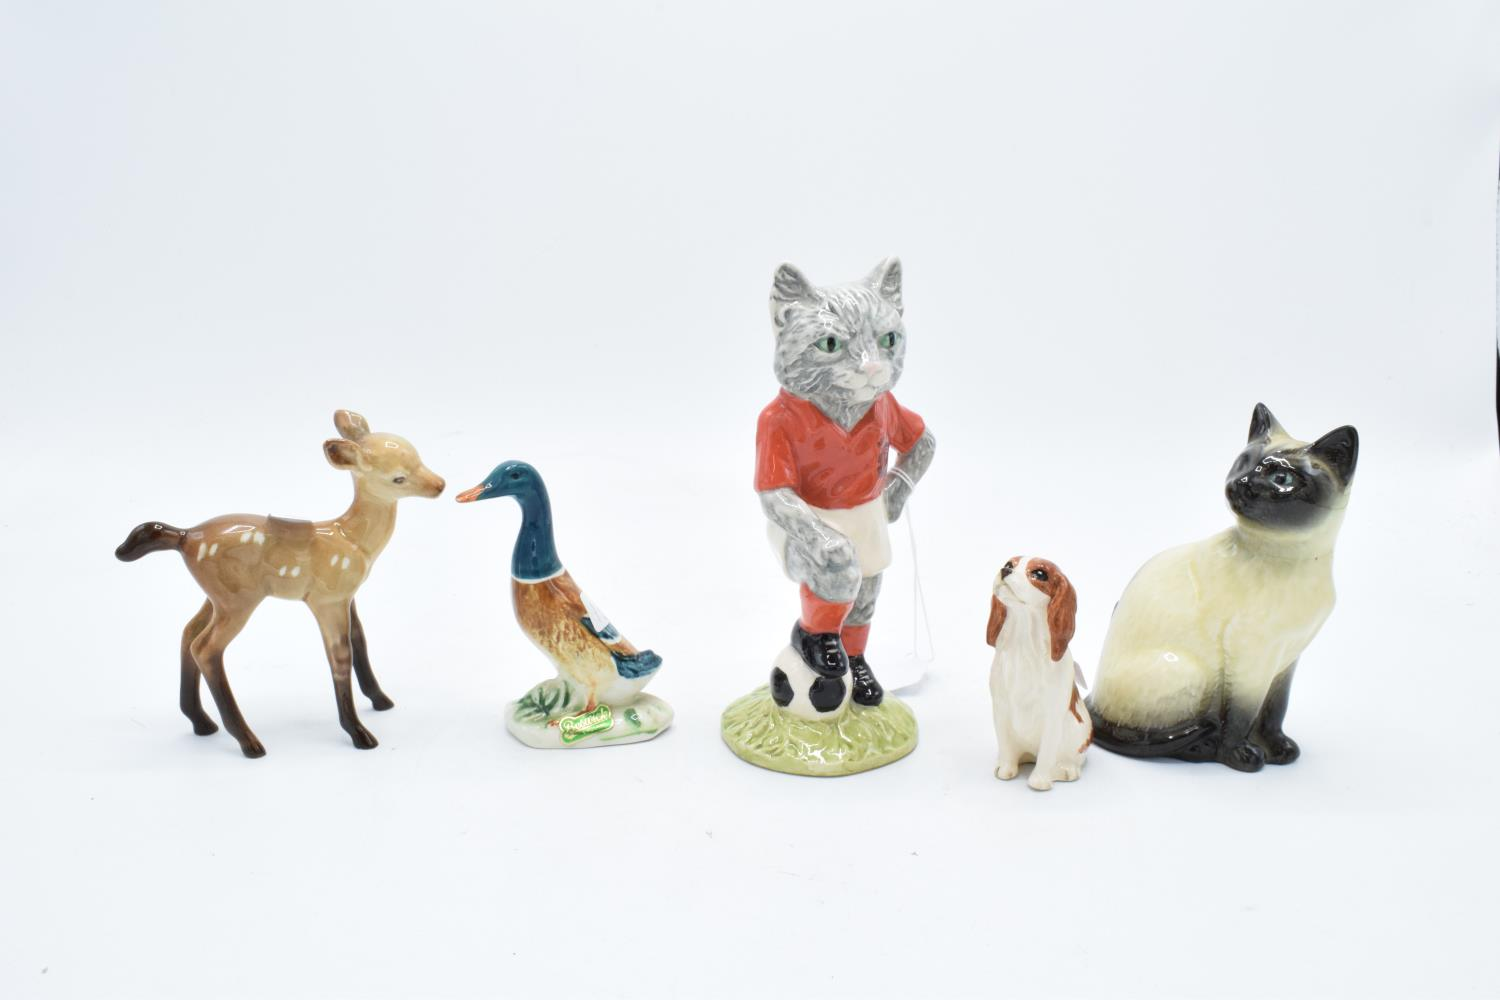 A mixed collection of Beswick to include a spaniel, a mallard duck, a Siamese cat, a fawn and a